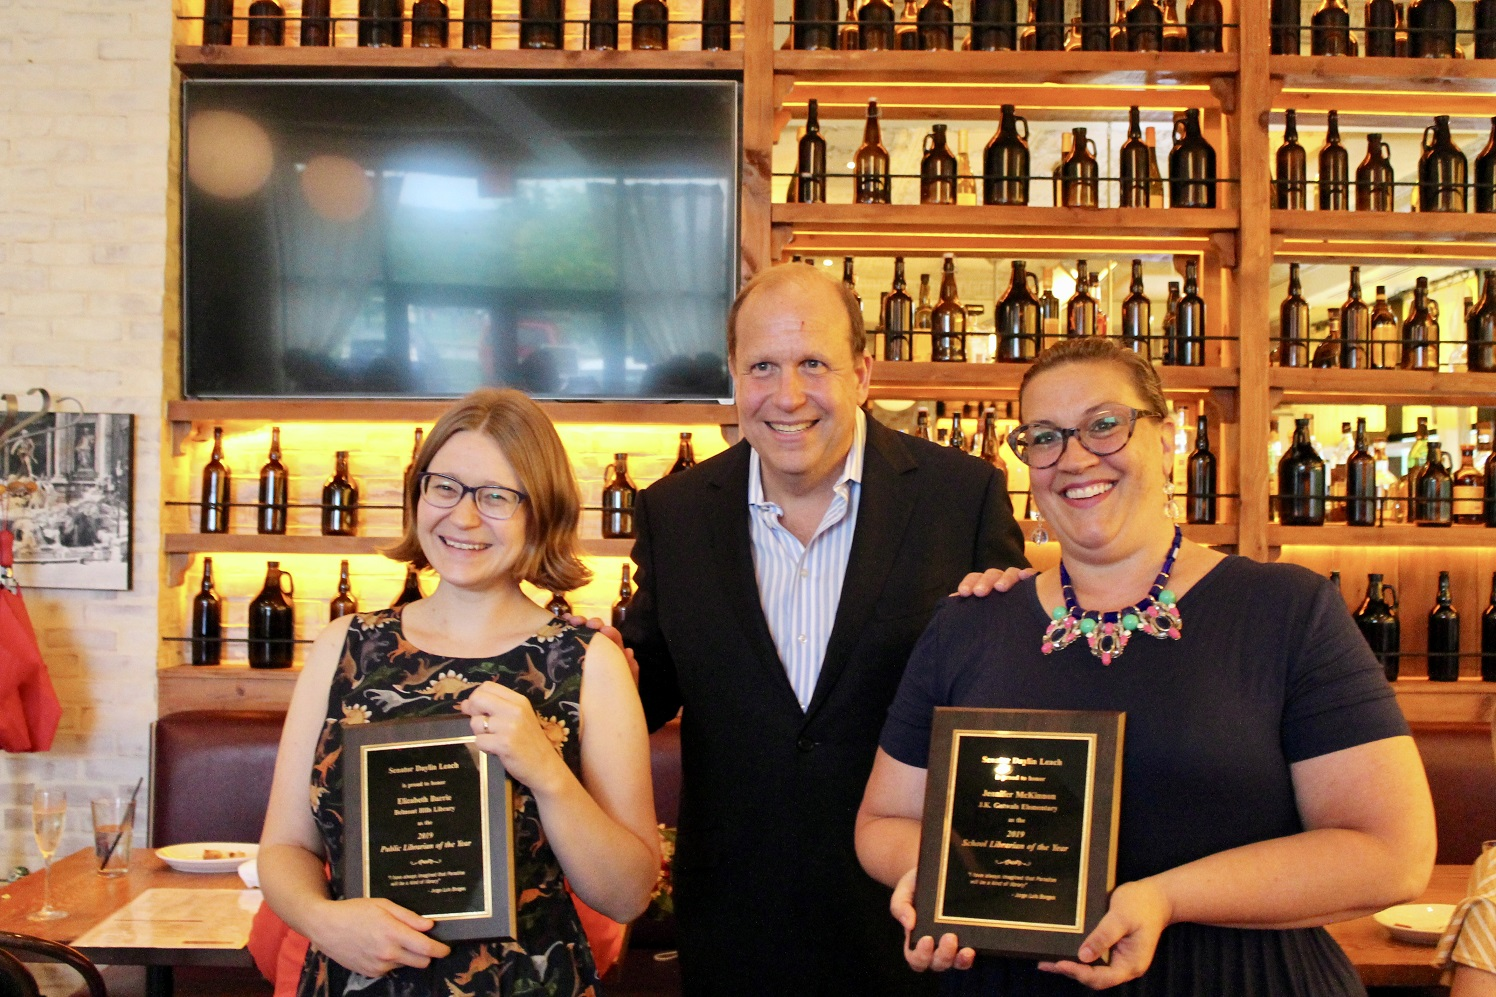 State Sen. Leach recognizes two outstanding librarians from Montgomery County